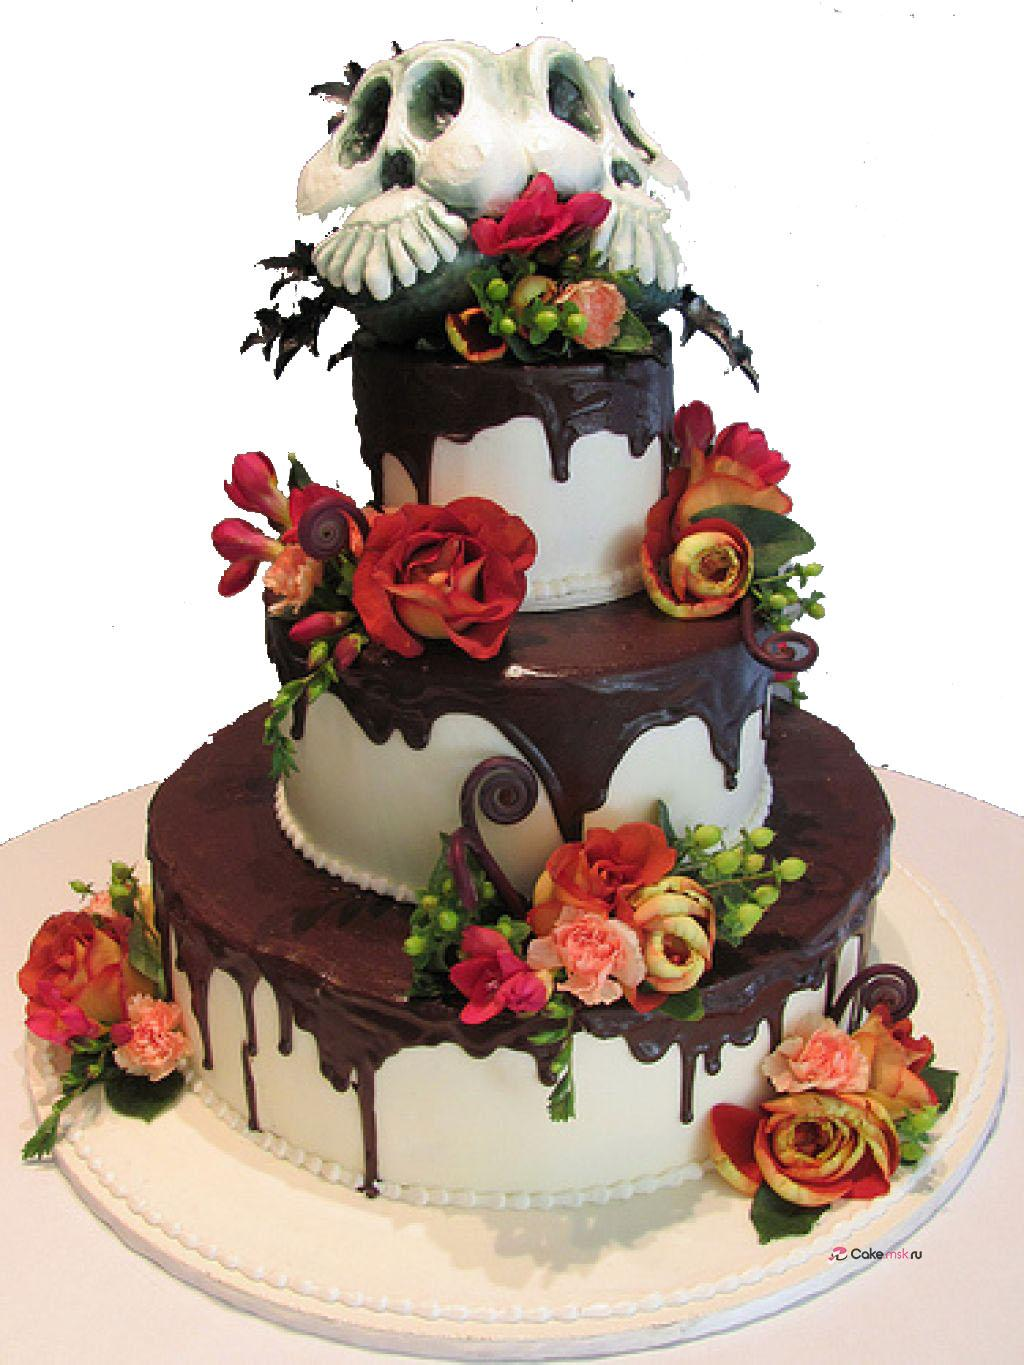 3tiered-wedding-cake-with-2-skulls-on-top-5541dfab03797